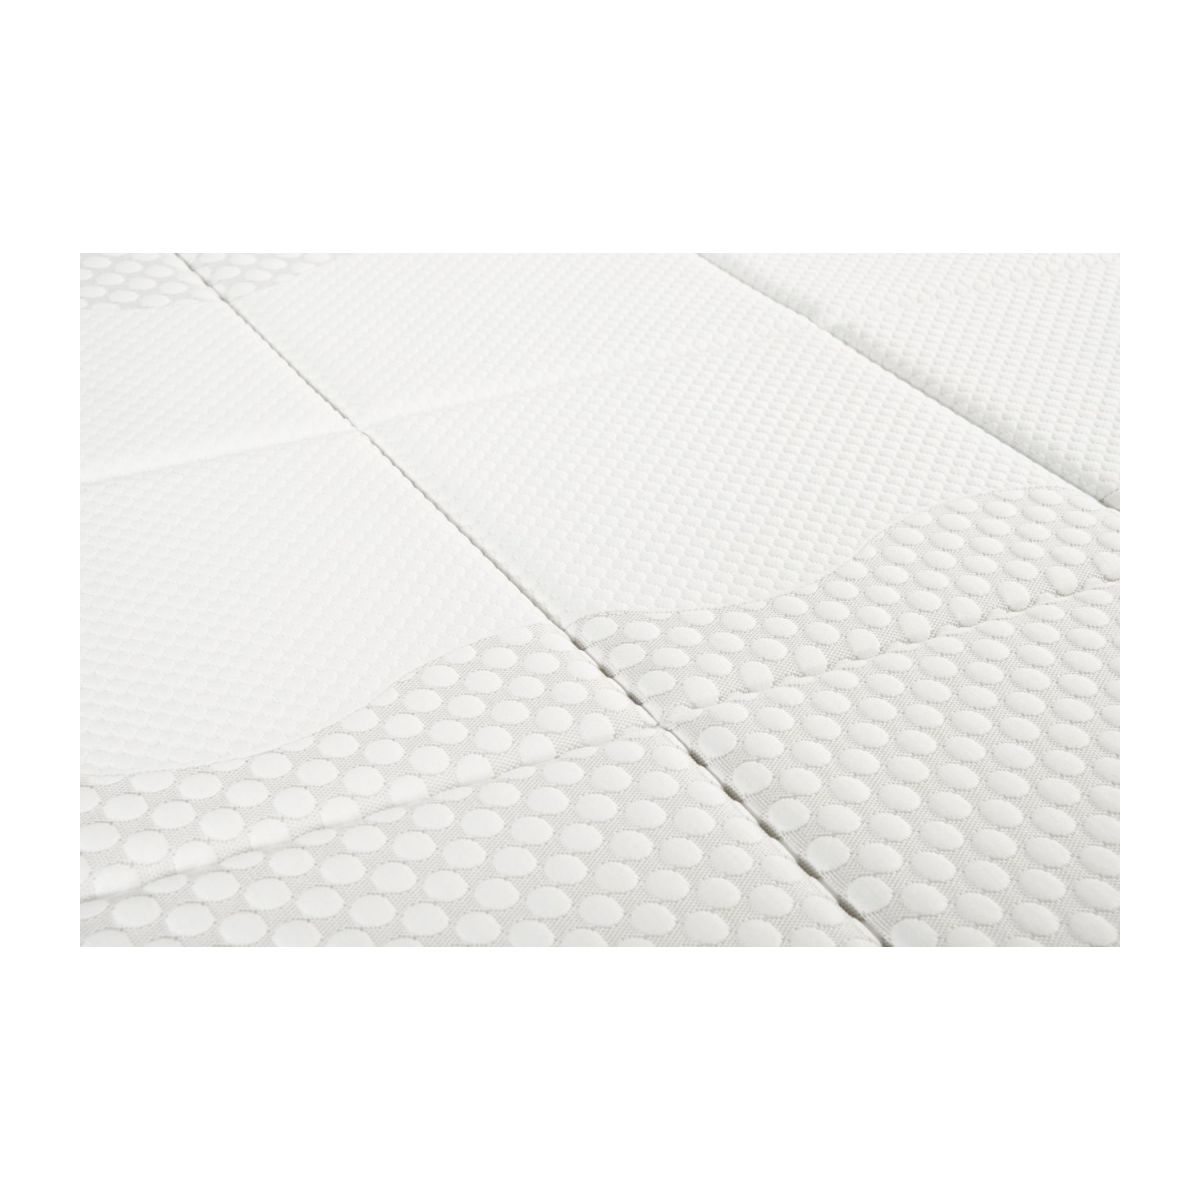 Foam mattress, width 24 cm, 160x200cm - medium support n°4